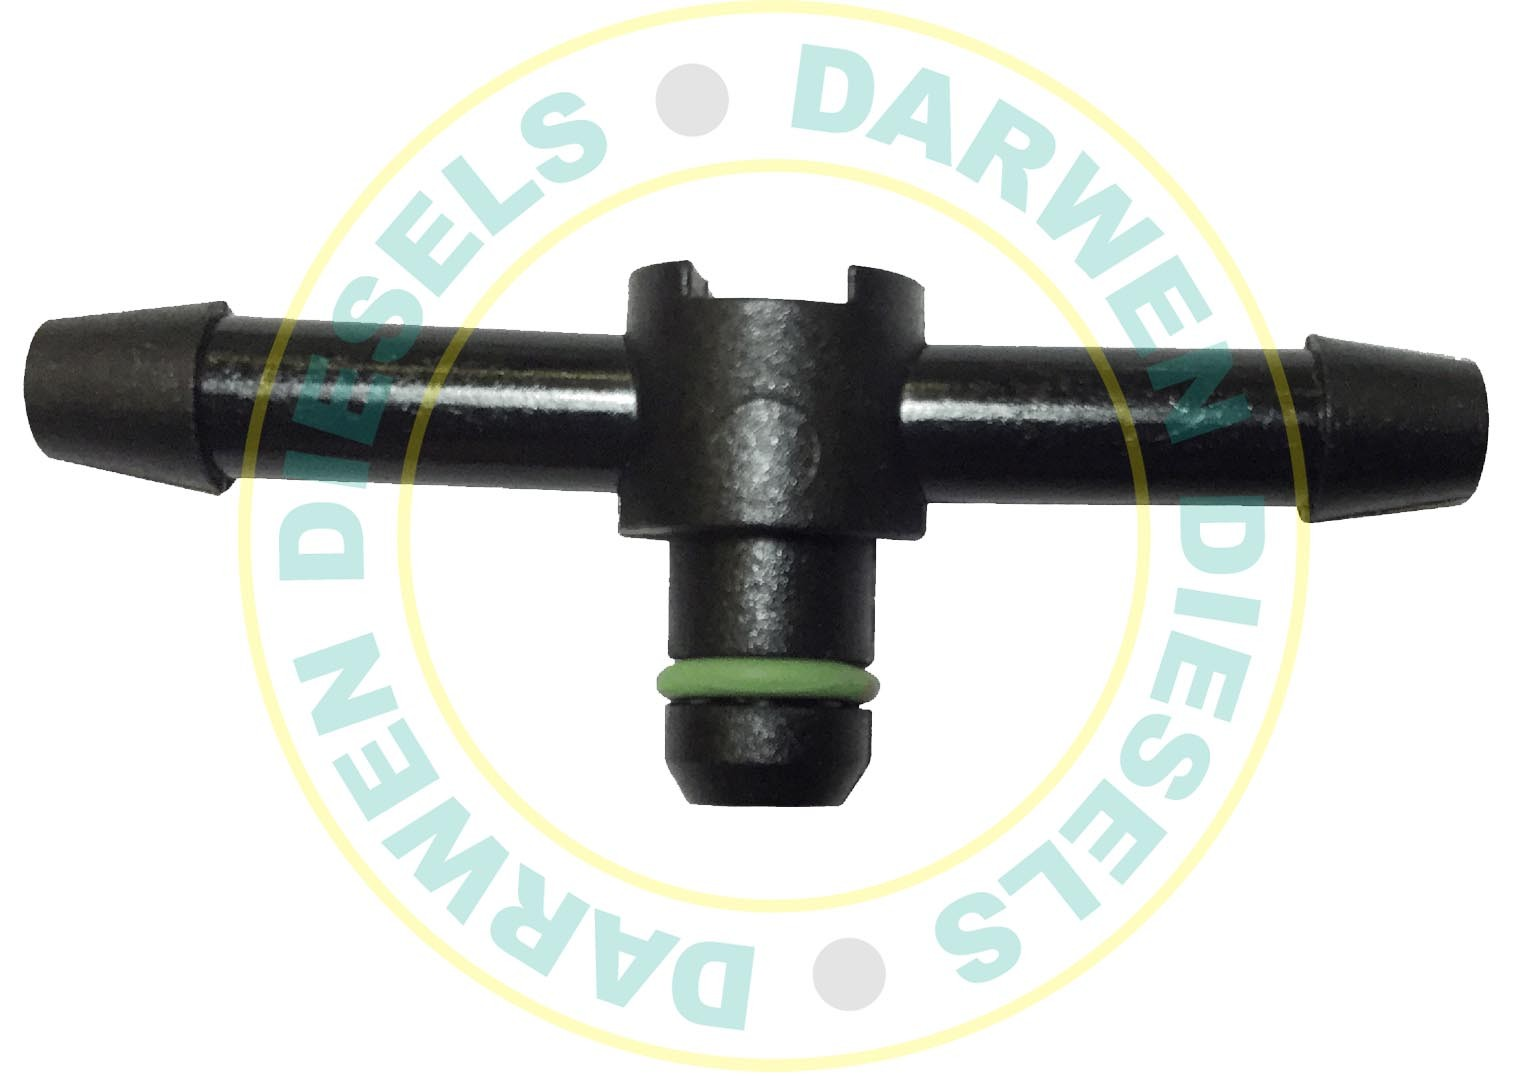 4 x DENSO DIESEL INJECTOR  COMMON RAIL LEAK OFF CONNECTOR 180 DEGREE.